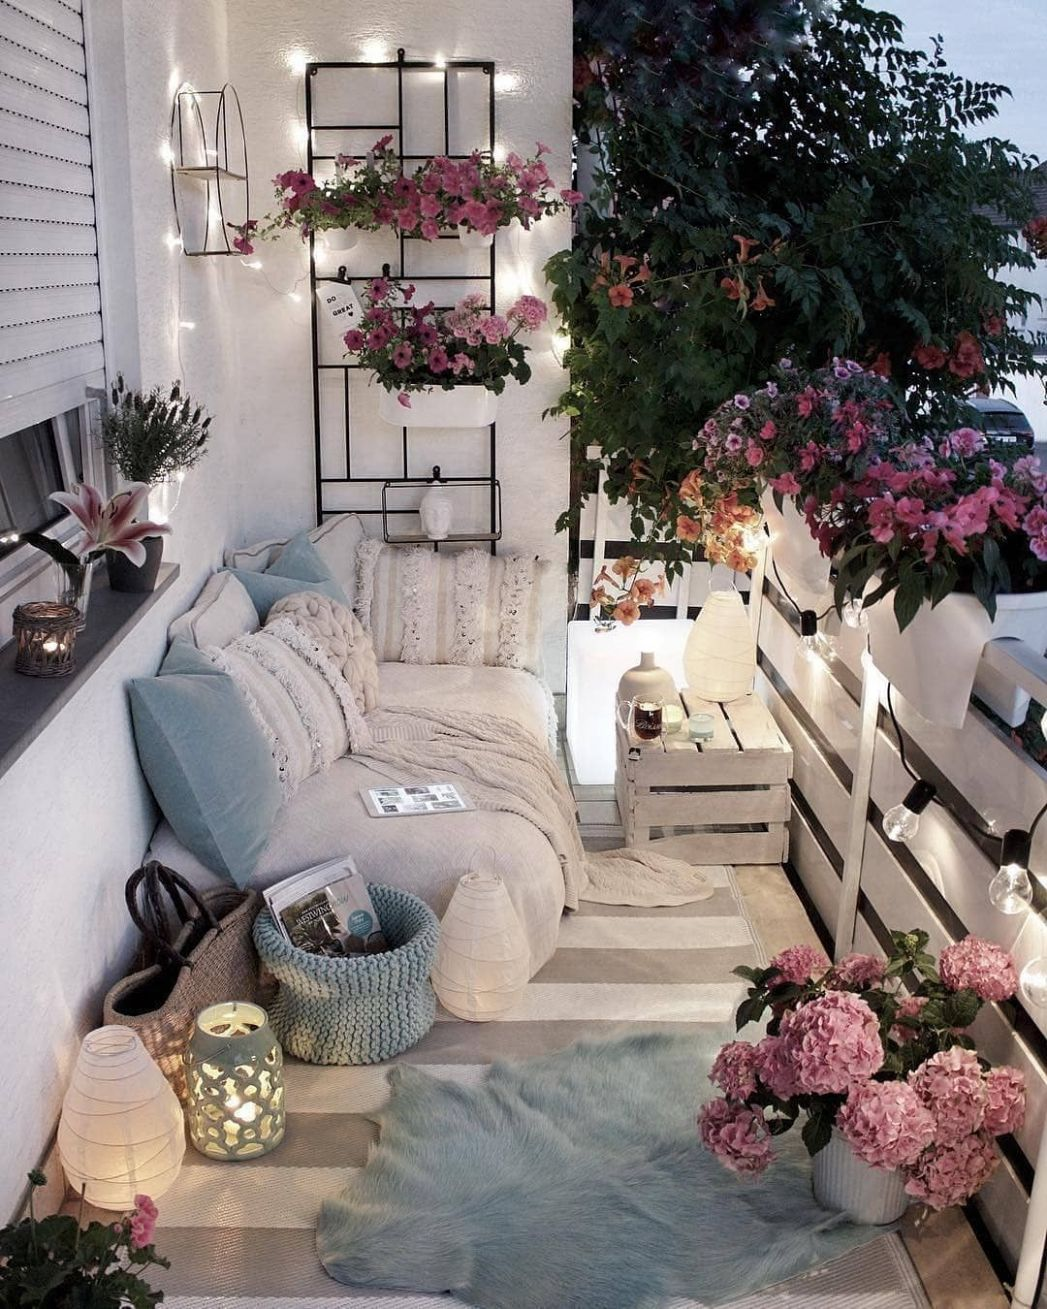 The Best Decorated Small Outdoor Balconies on Pinterest   Small ..